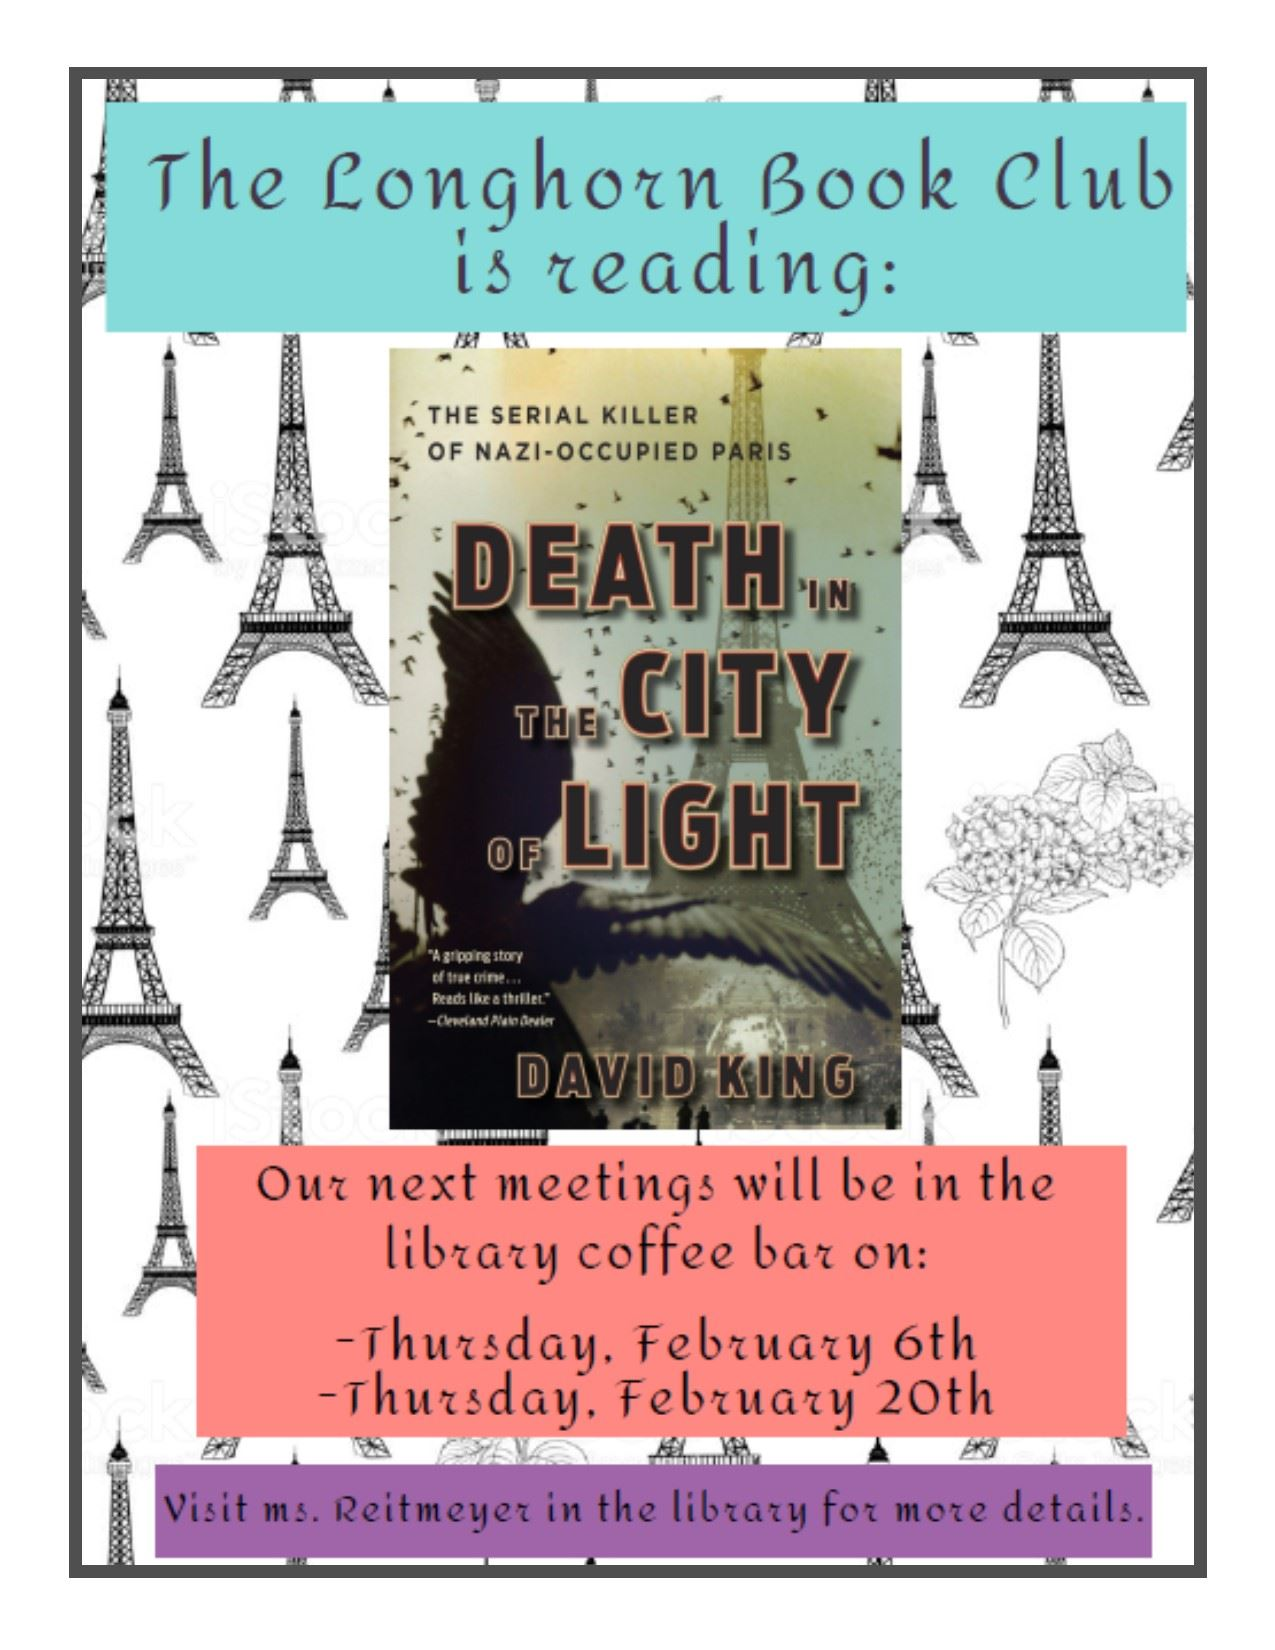 We are currently reading Death in the City of Light.